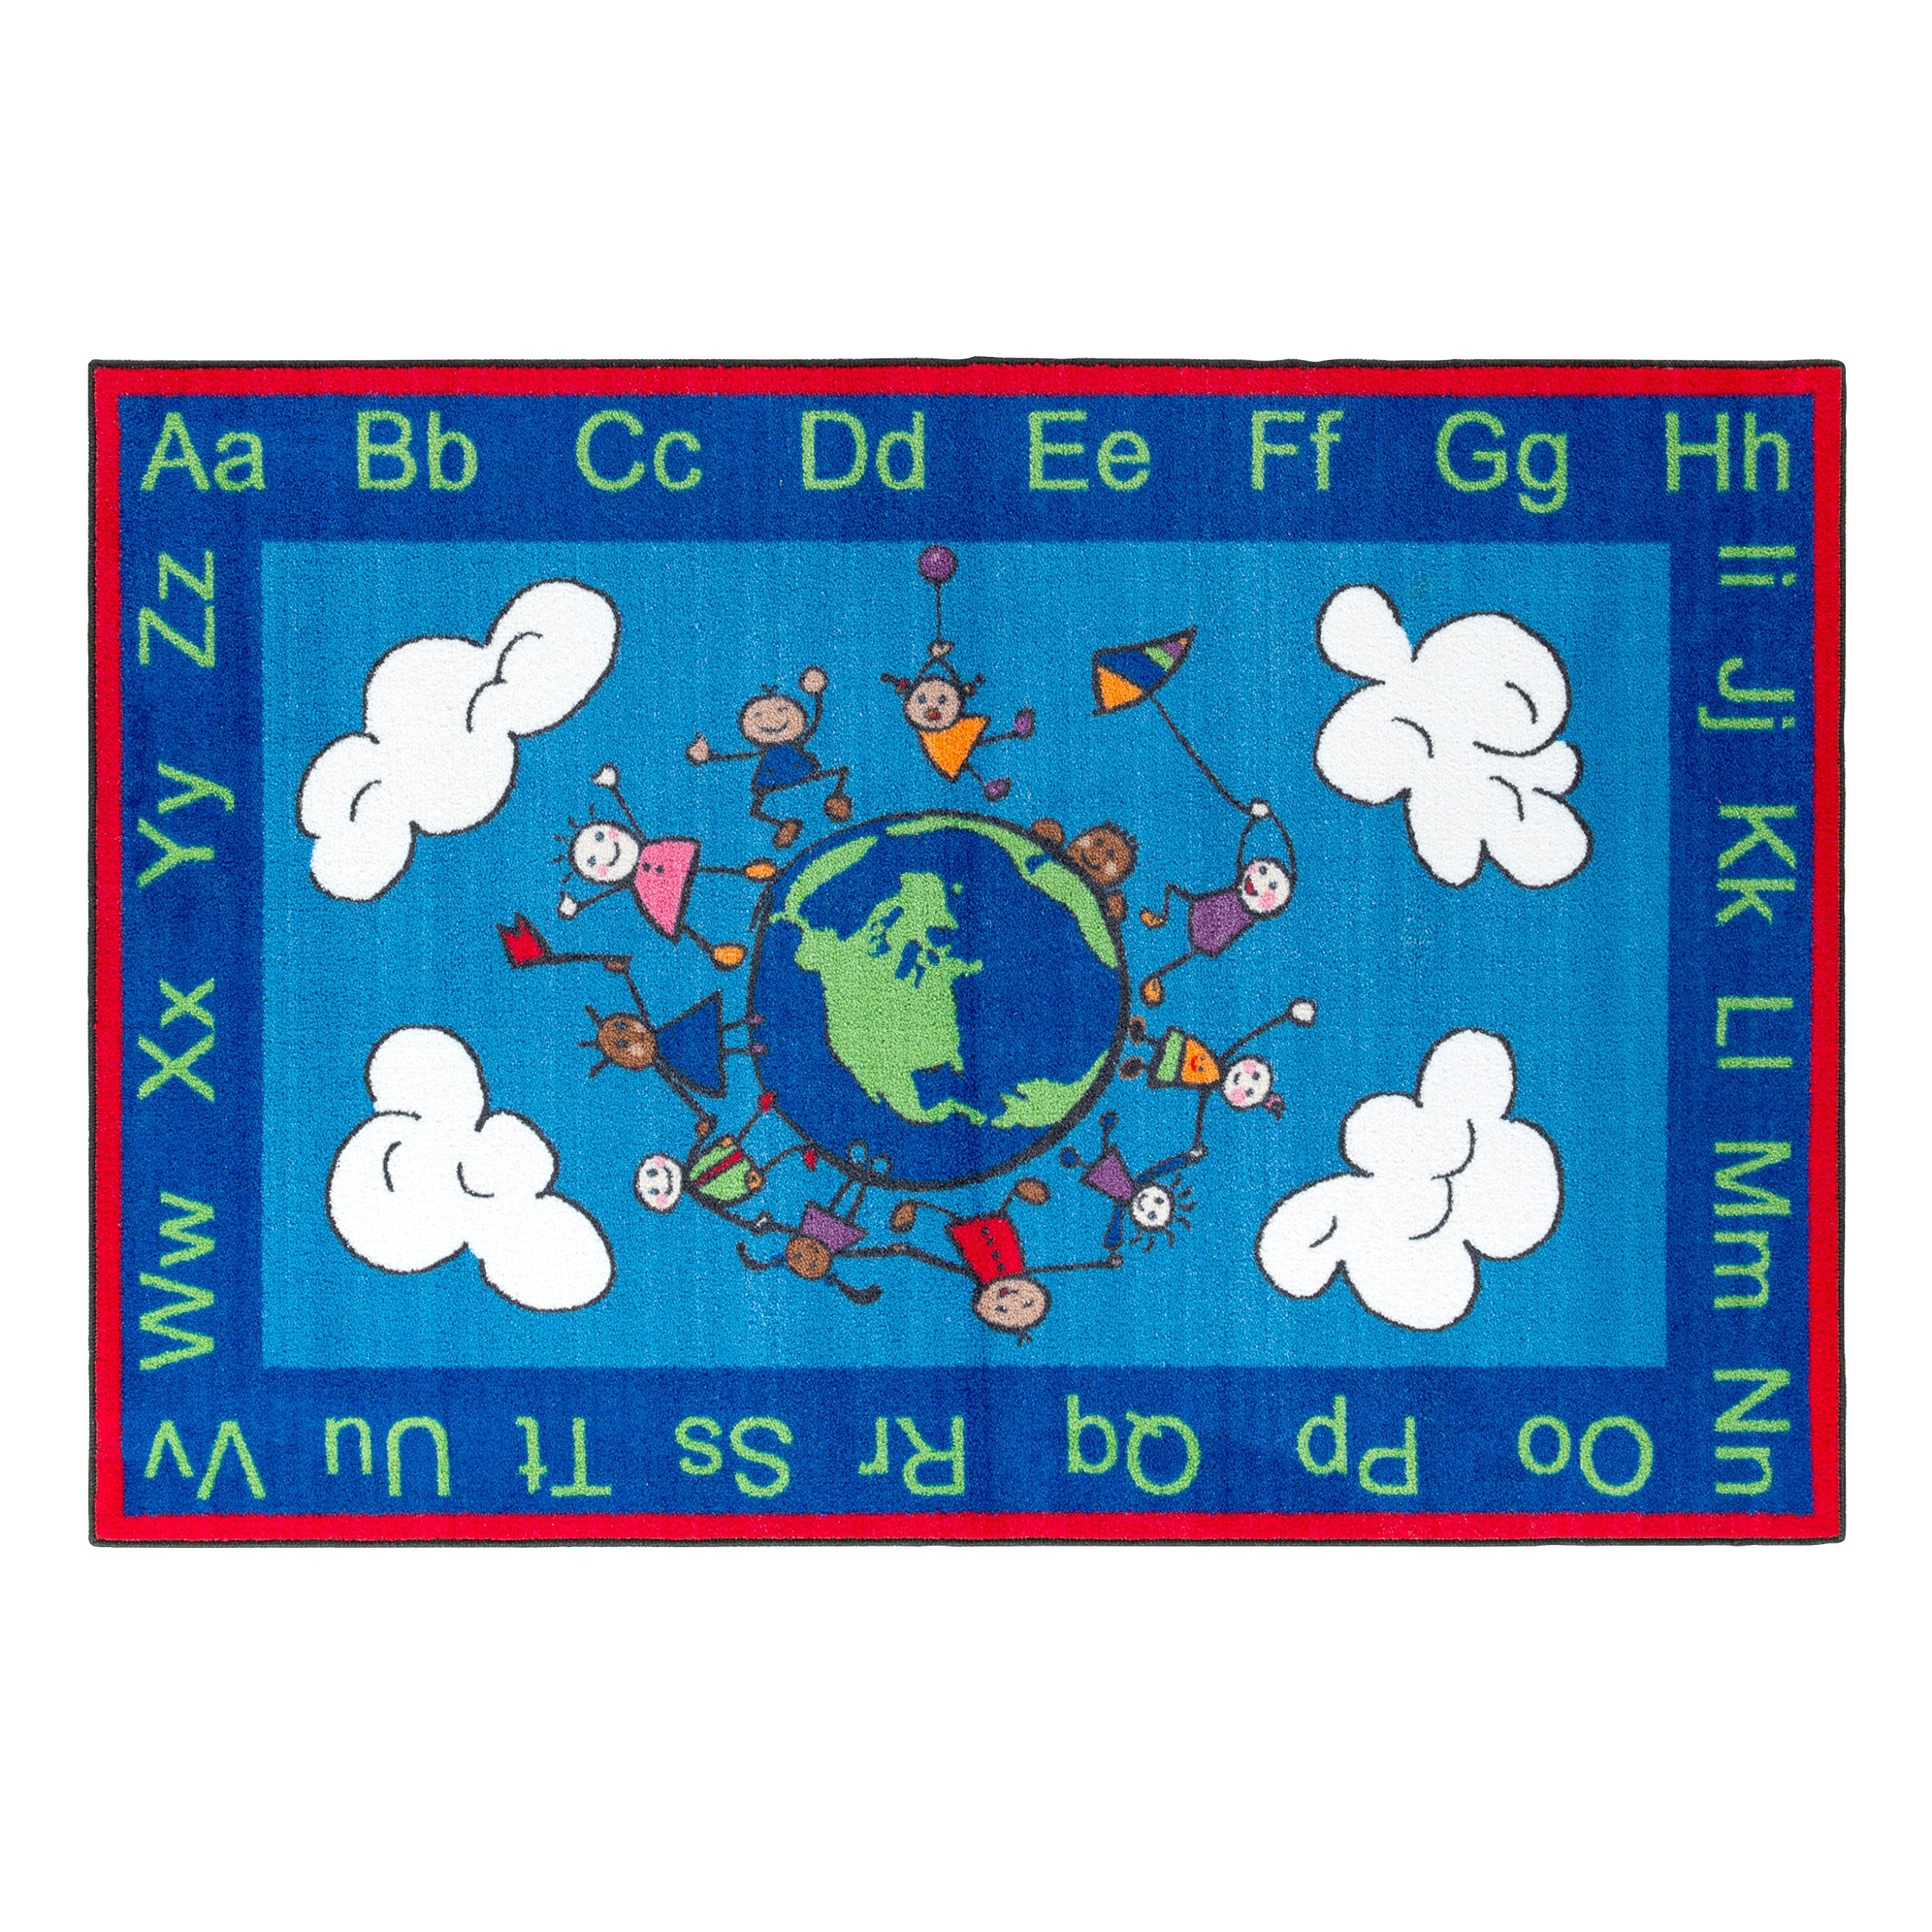 Flagship Carpets CE189-22W Happy World Rug, Promotes Acceptance with Cheerful Friends of Diverse Backgrounds, 4' x 6', 48'' Length, 72'' Width, Blue/Multi-Color